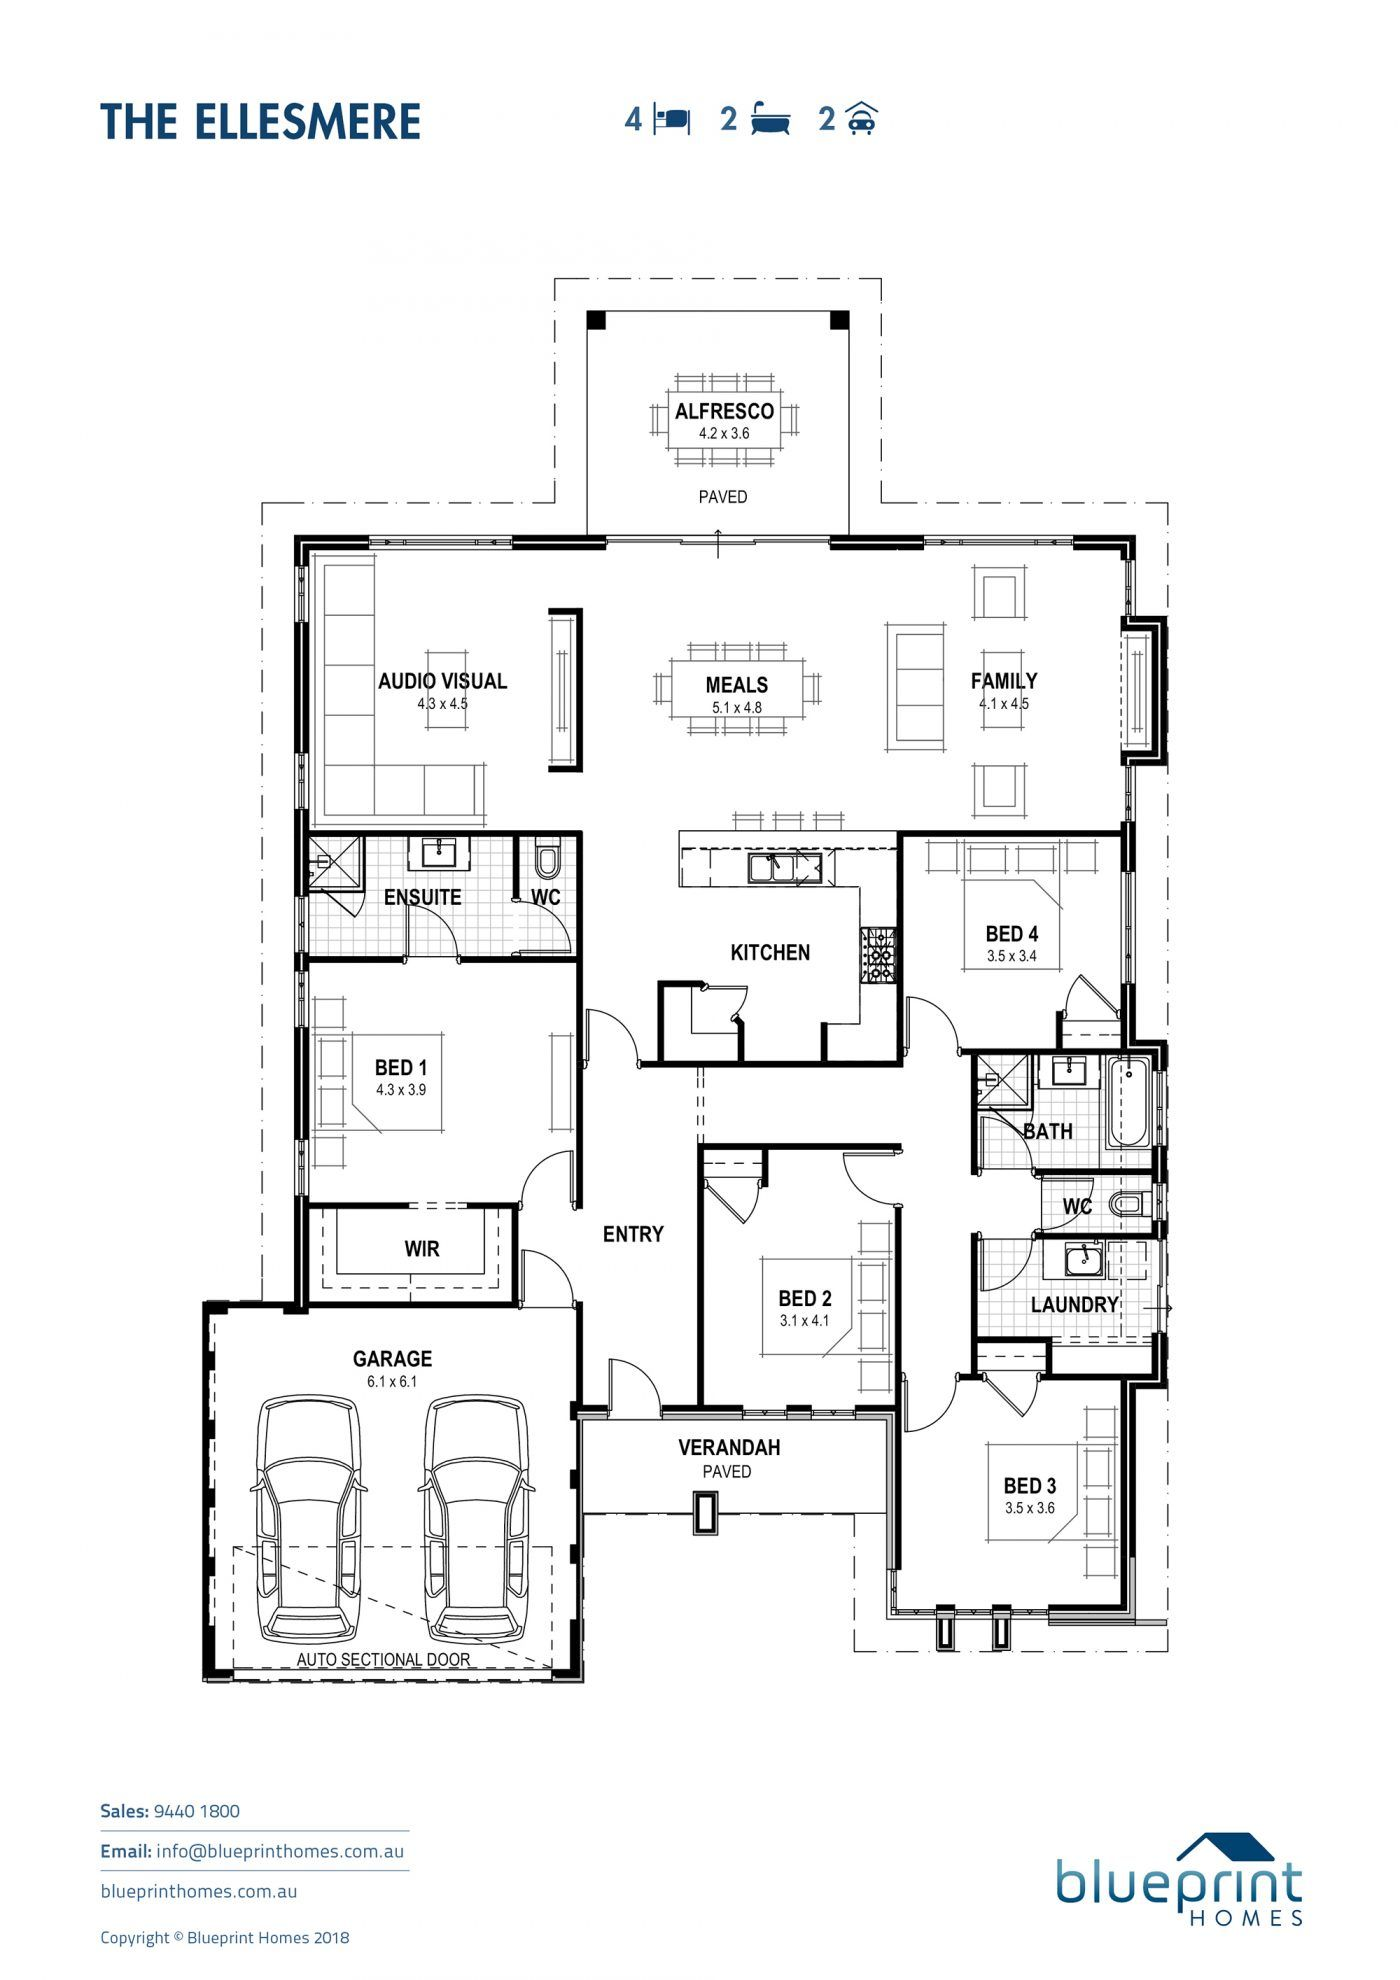 Home Designs Perth Blueprint Homes House Plans Home Builders House Design